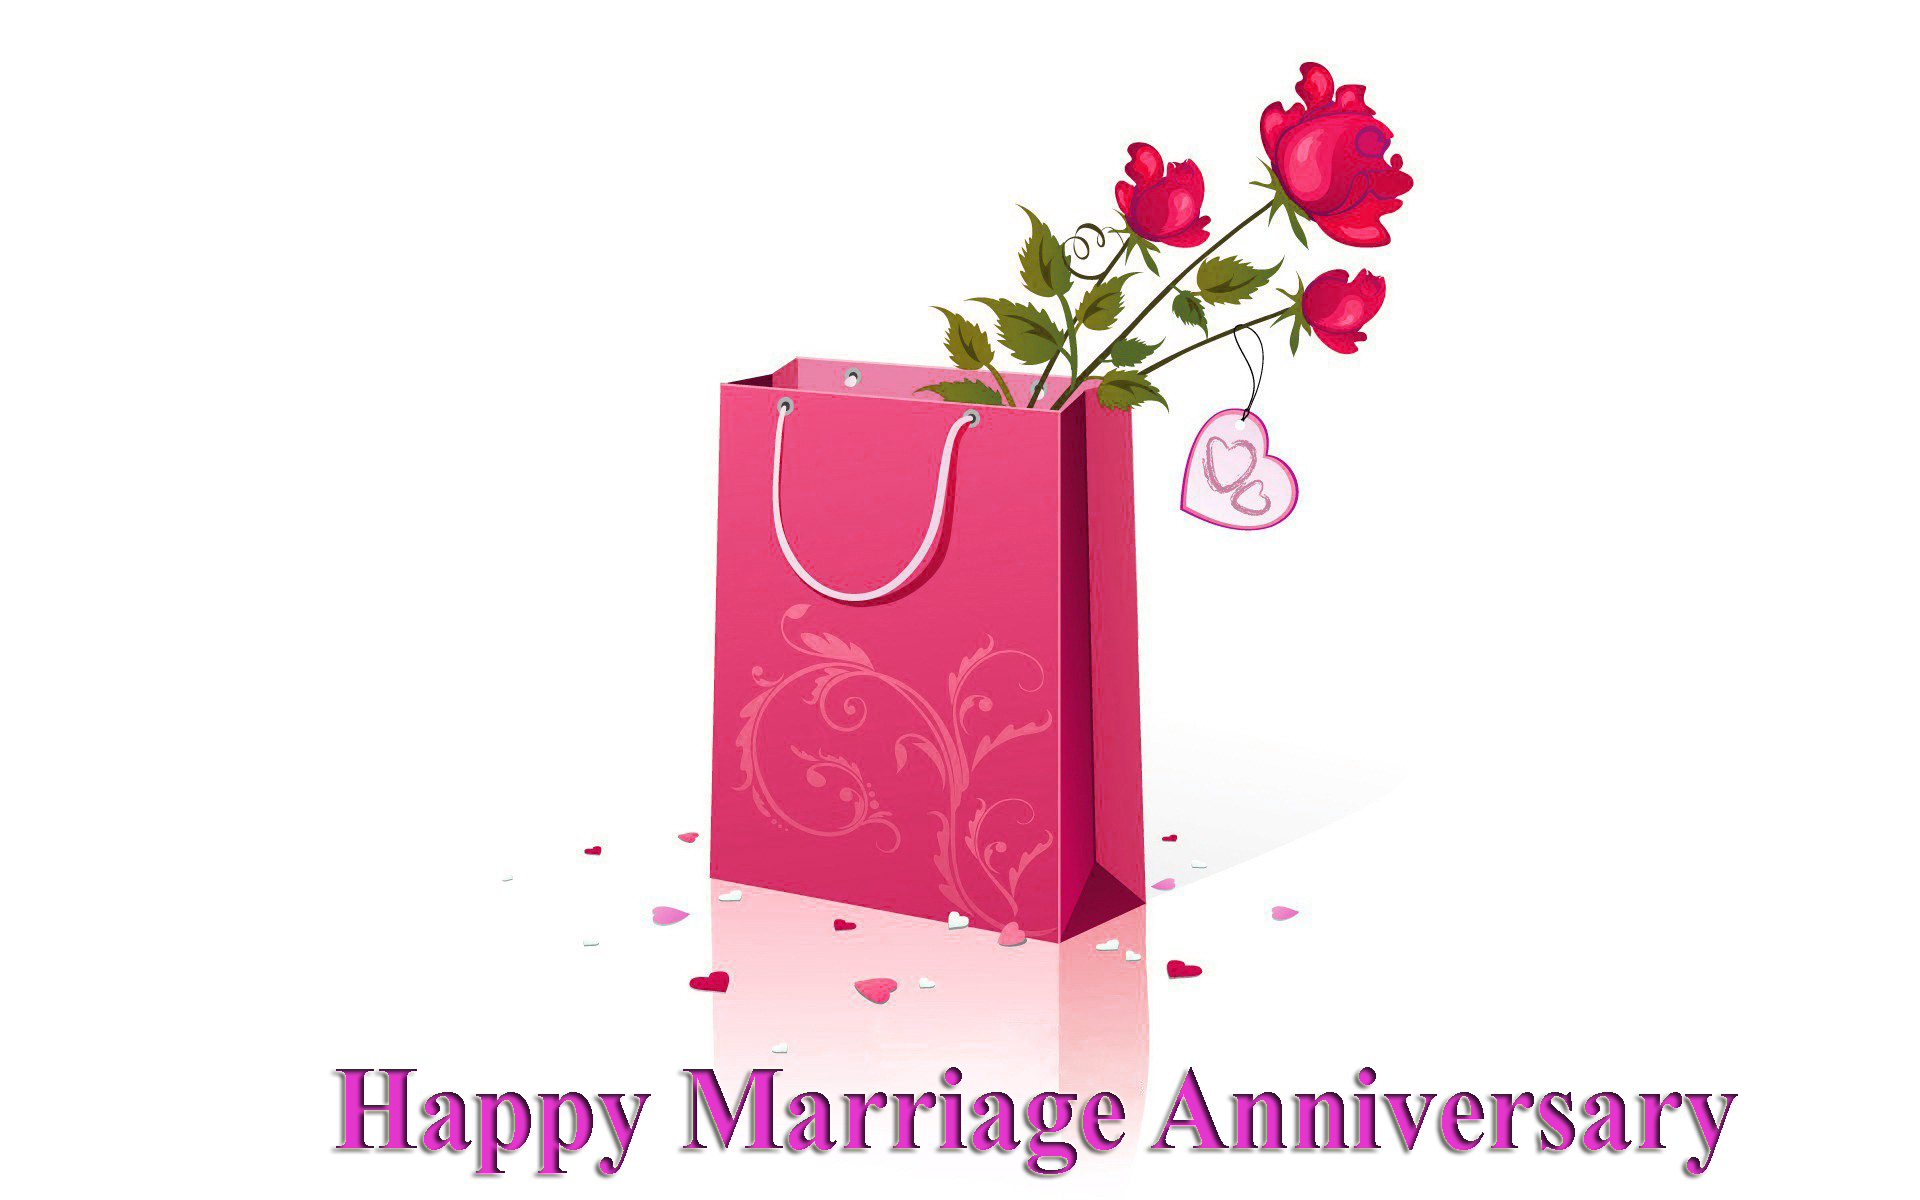 Best Happy Wedding Anniversary Wishes Images Cards Greetings ...